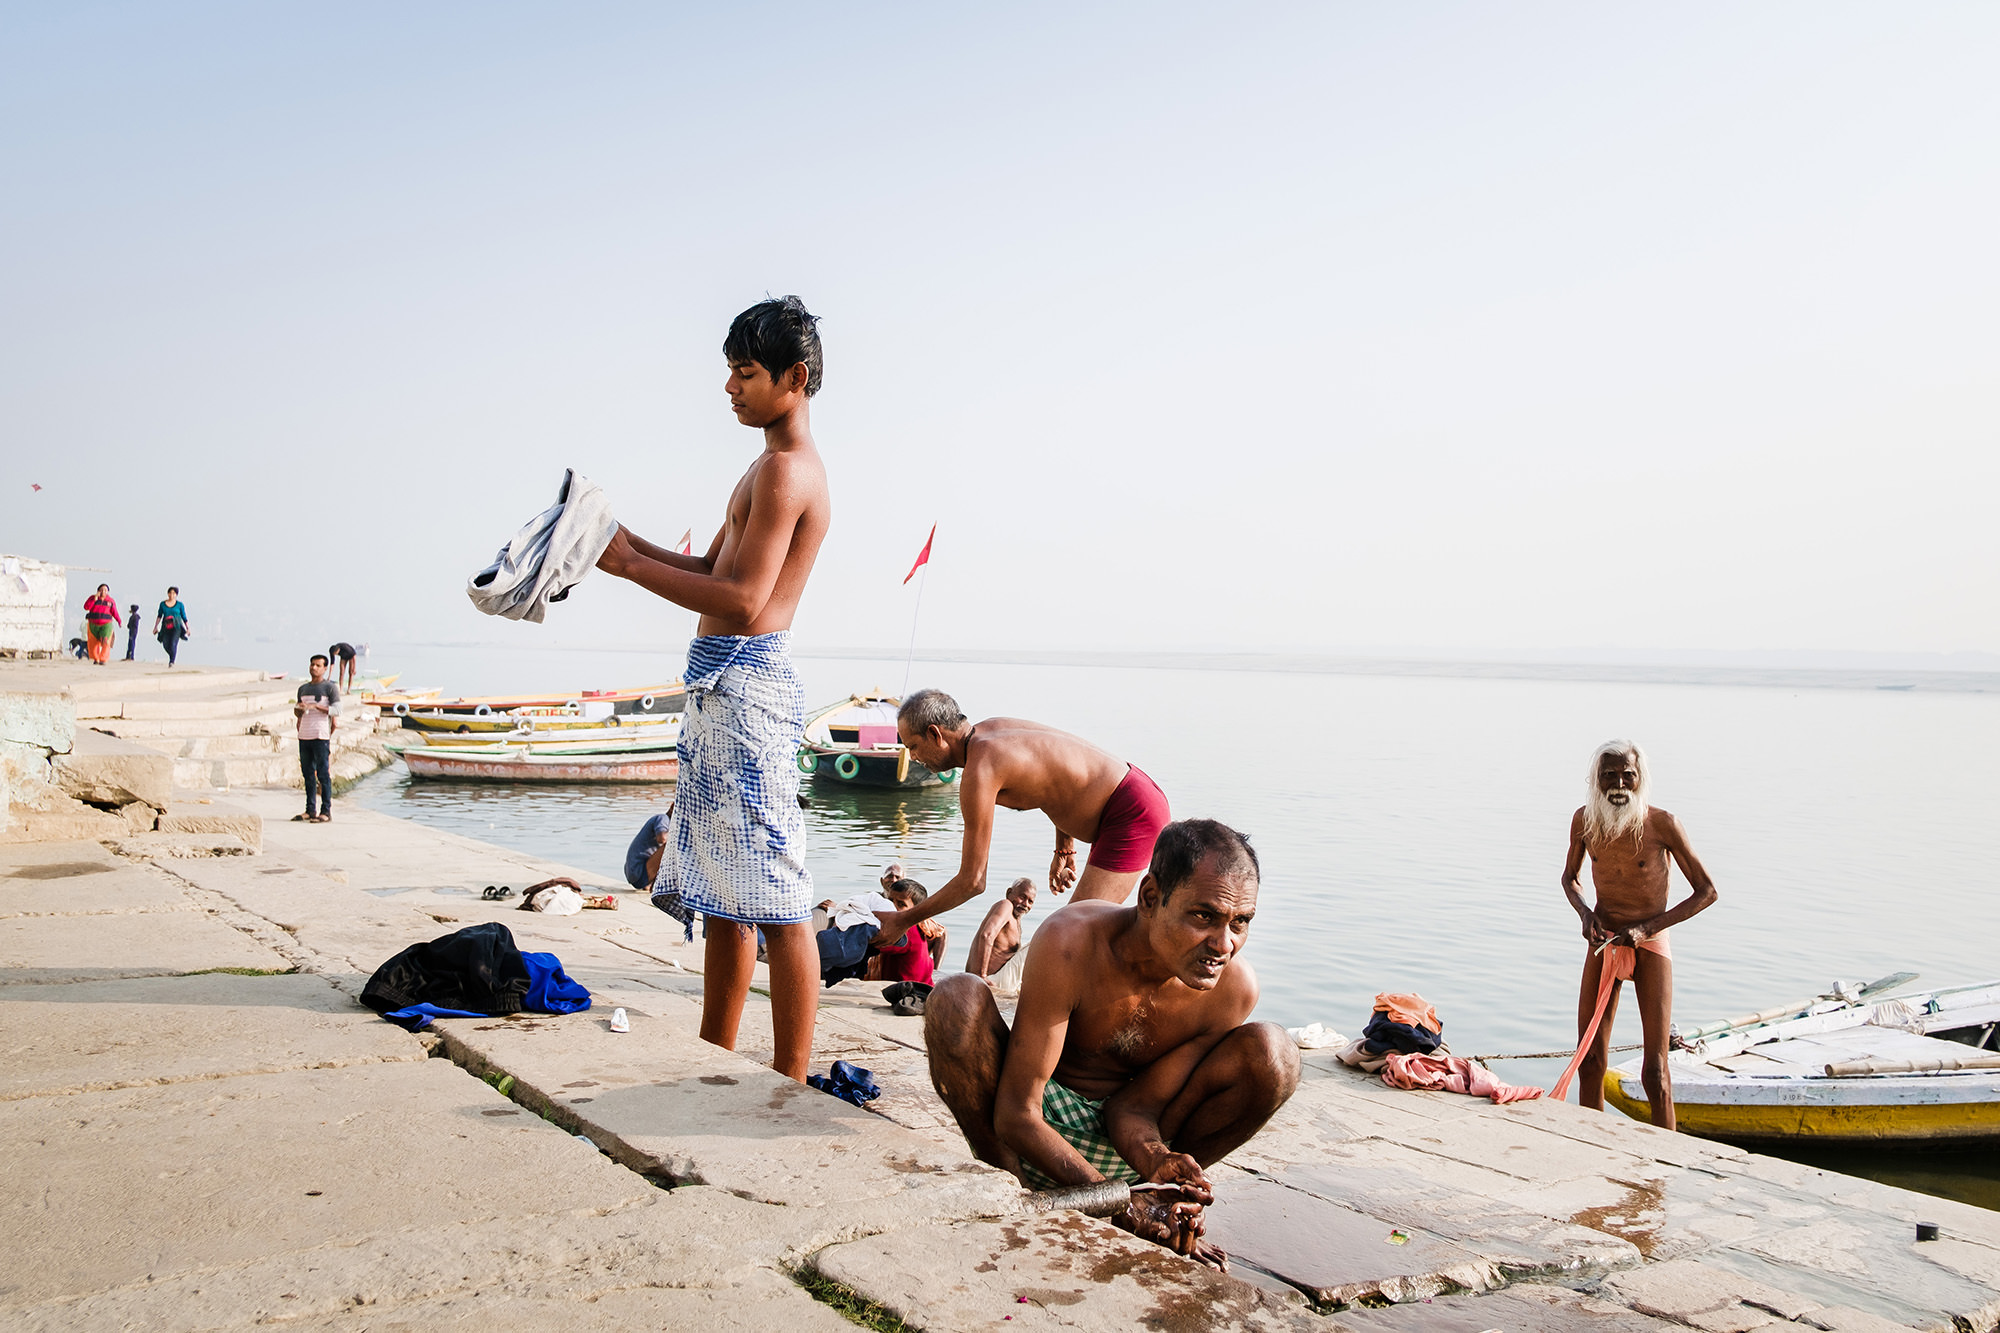 Street photography in India